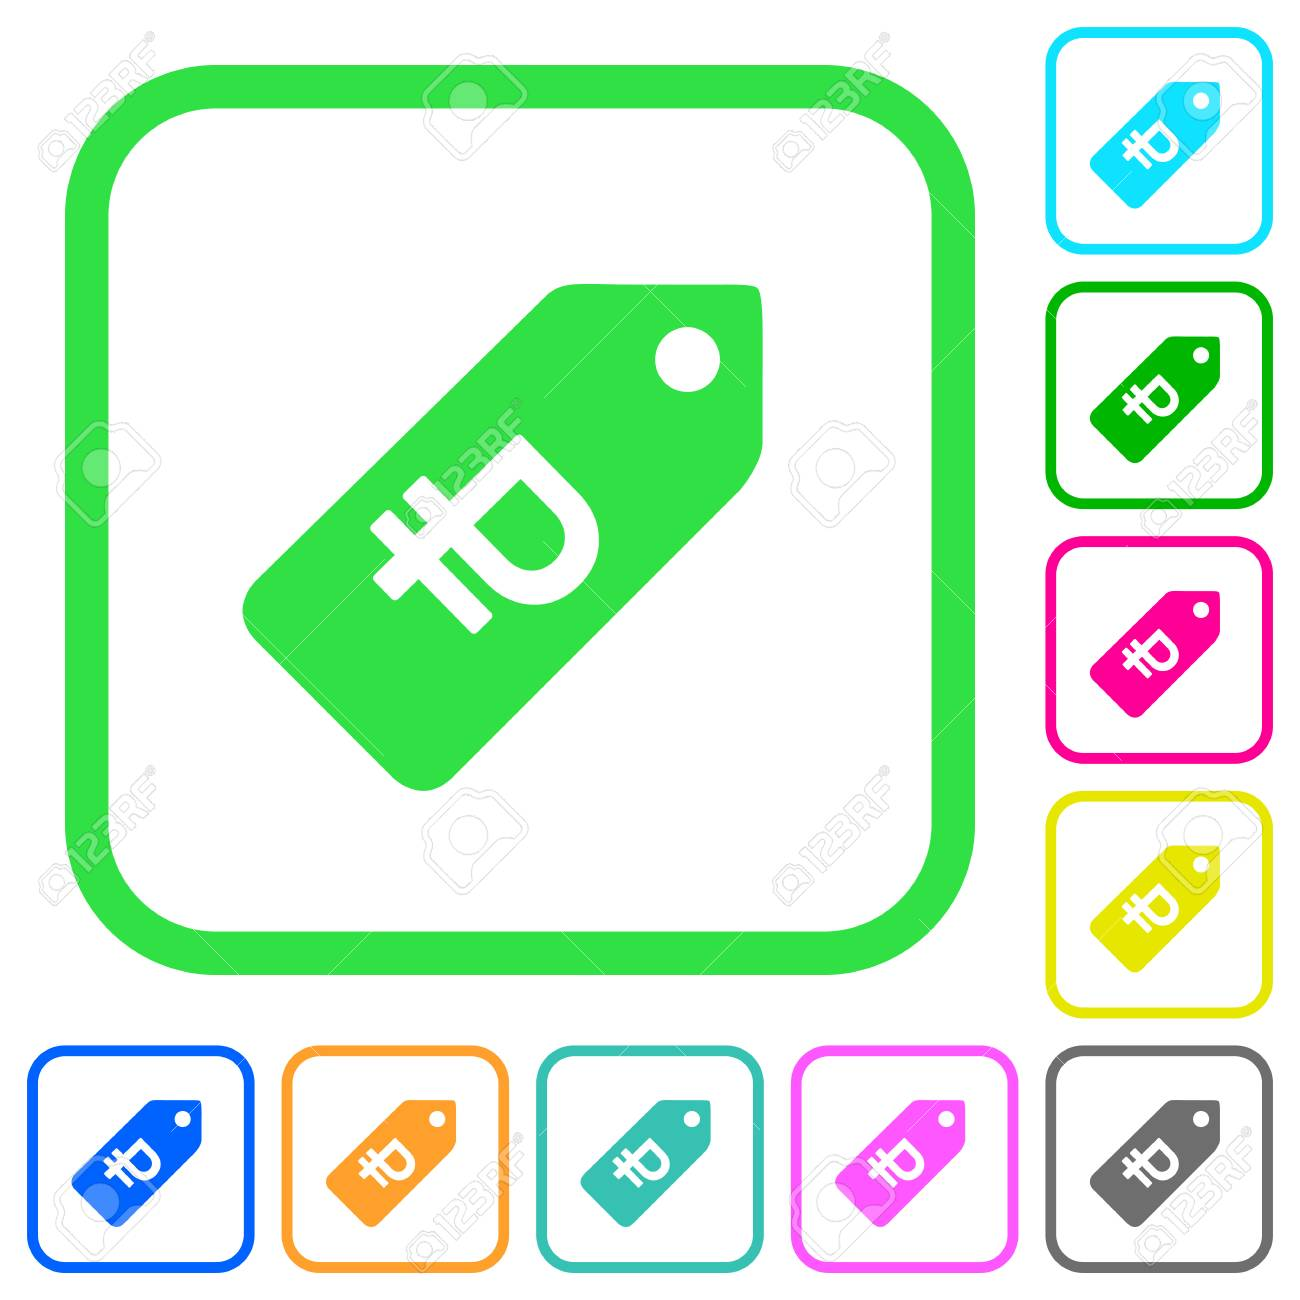 ruble price label vivid colored flat icons in curved borders